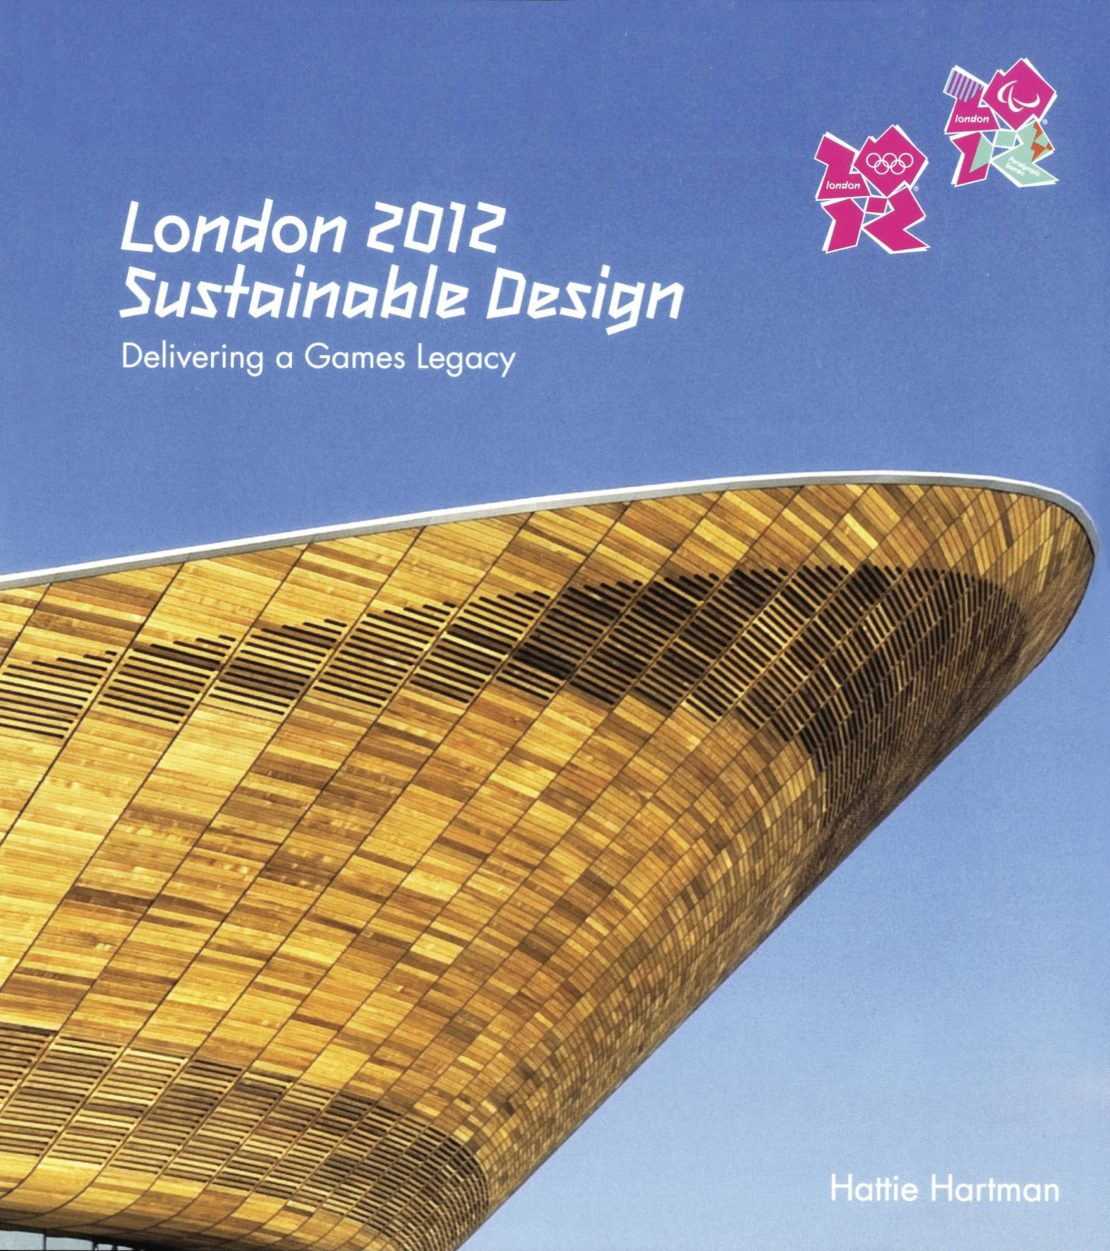 London 2012 Sustainable Design